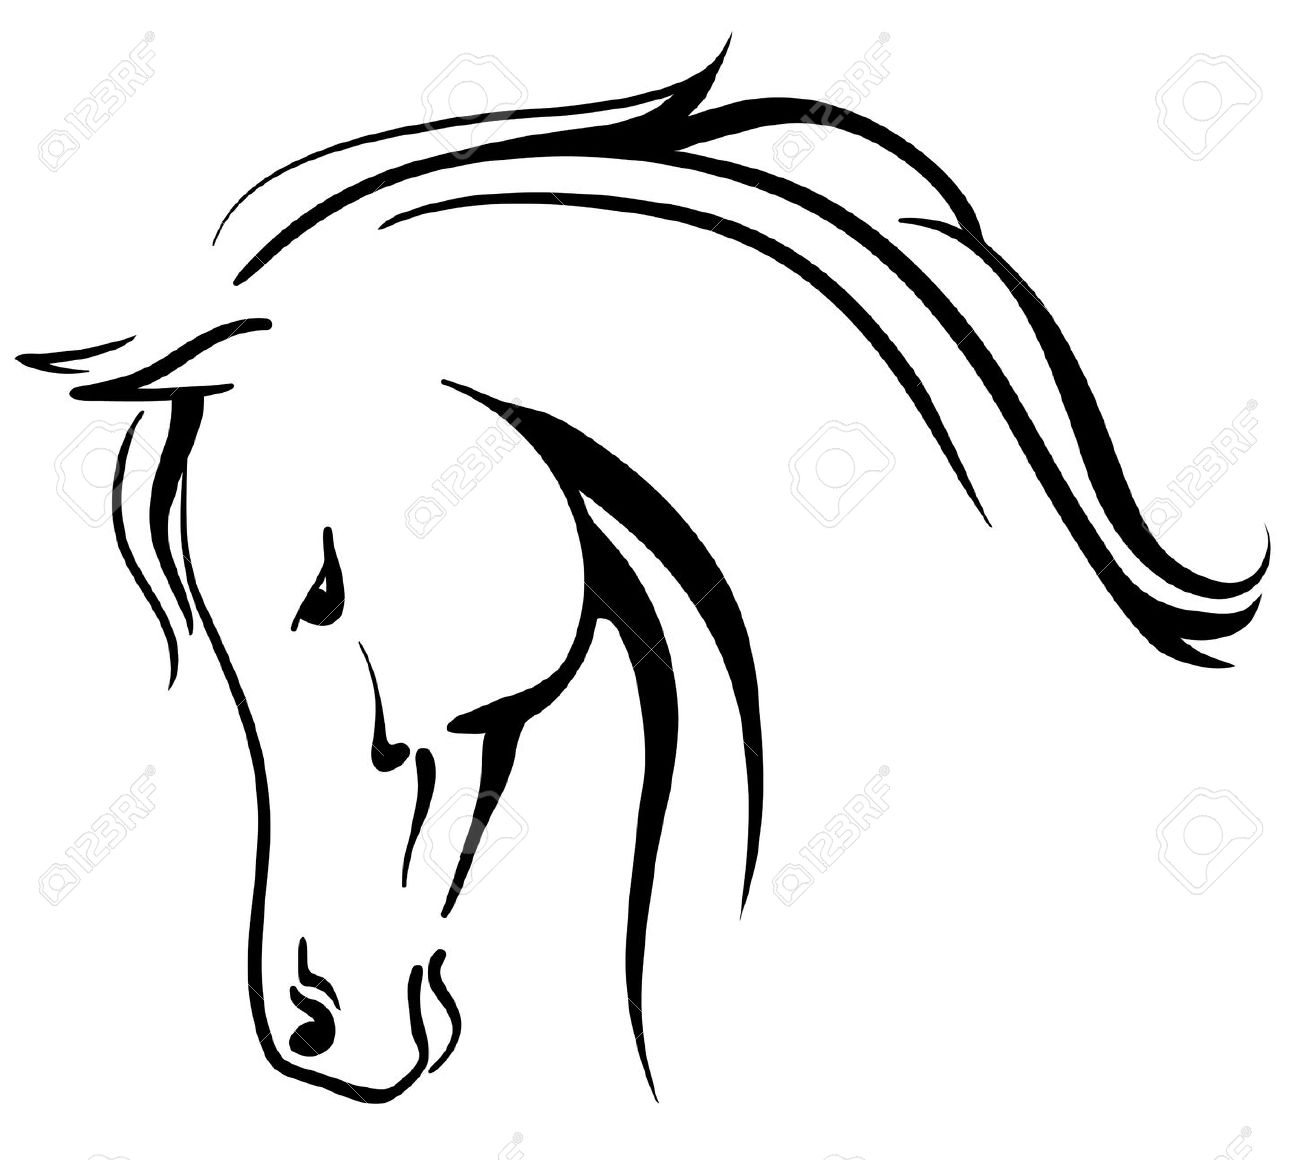 1300x1160 horses head clipart black and white